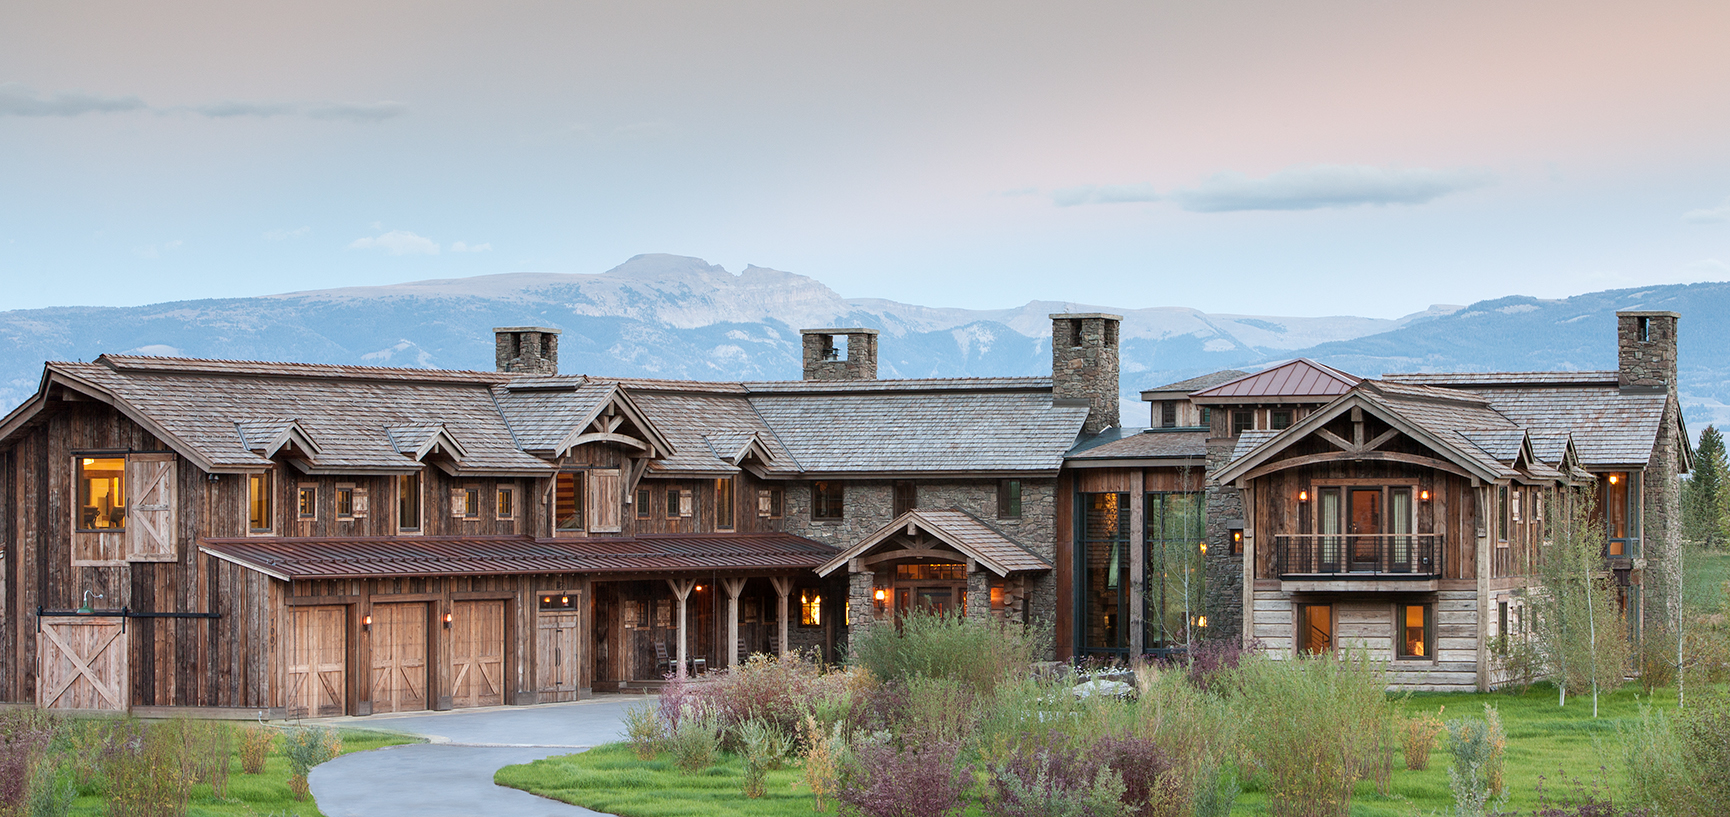 This is an exterior elevation photo of a private residence at Shooting Star in Jackson Wyoming. The house is large and rustic with a raw or reclaimed timber lok to it and has a view of Jackson's Sleeping Indian behind.